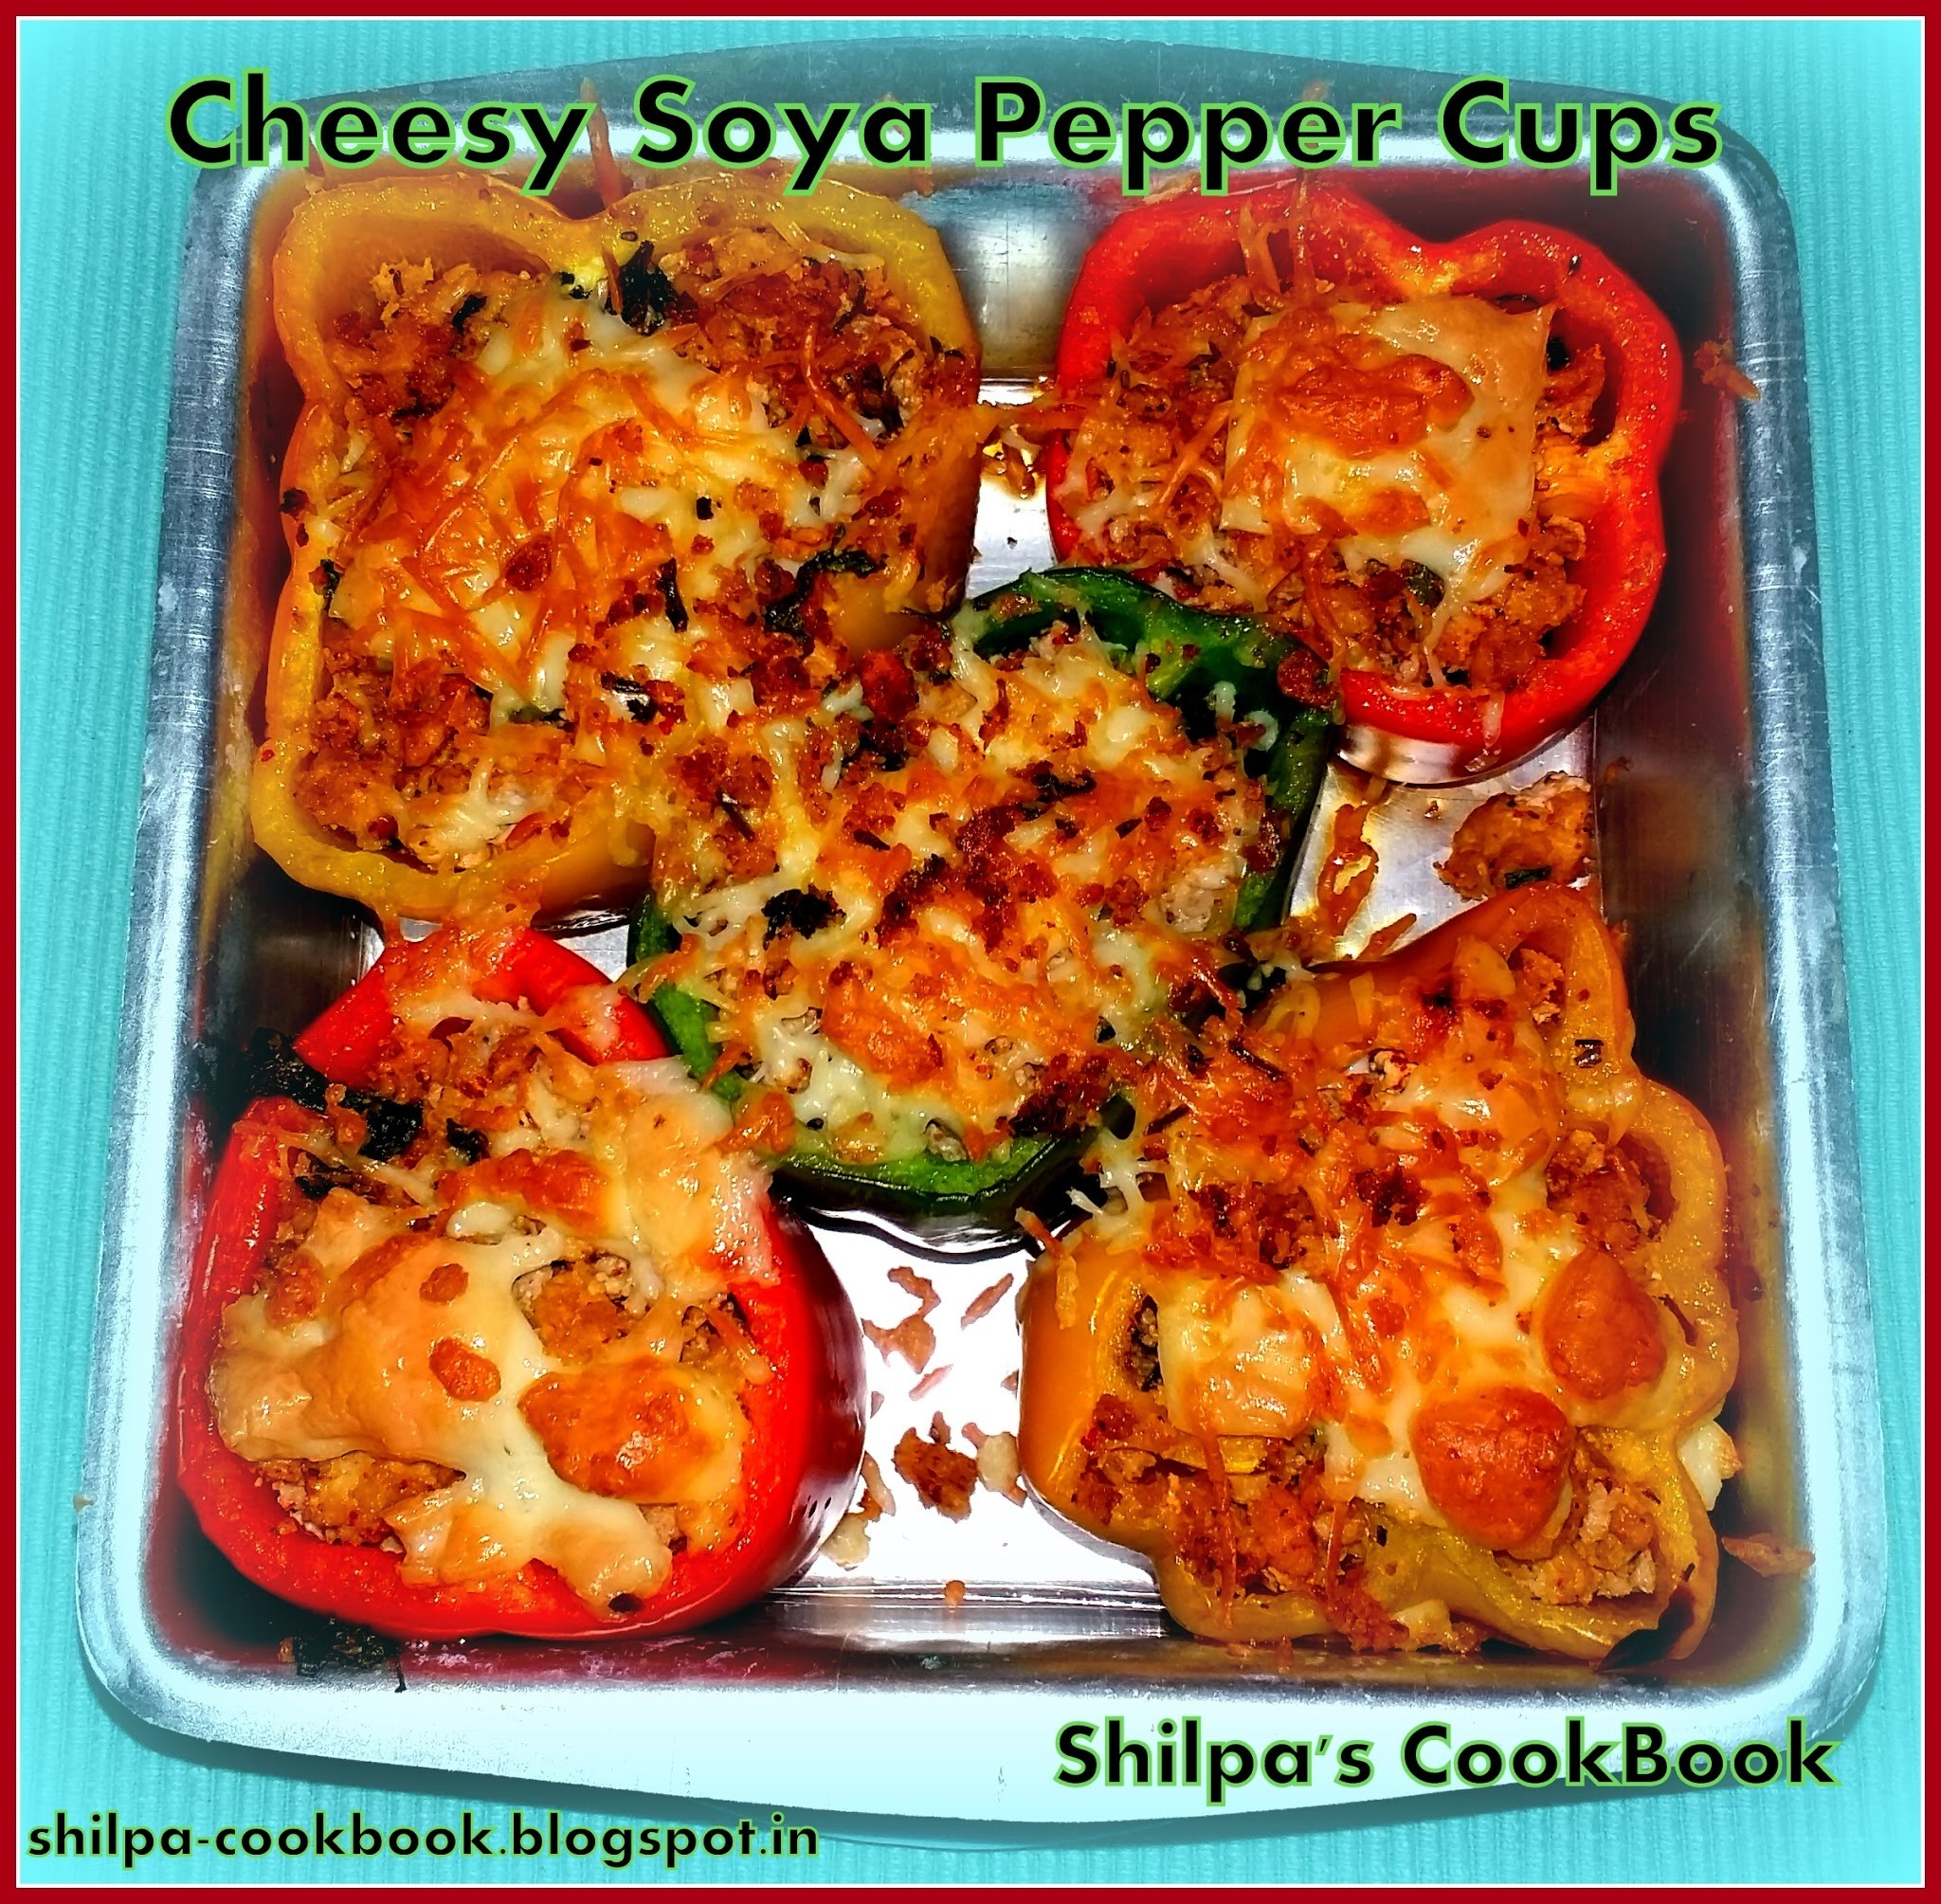 Dish #448 - Cheesy Soya Pepper Cups